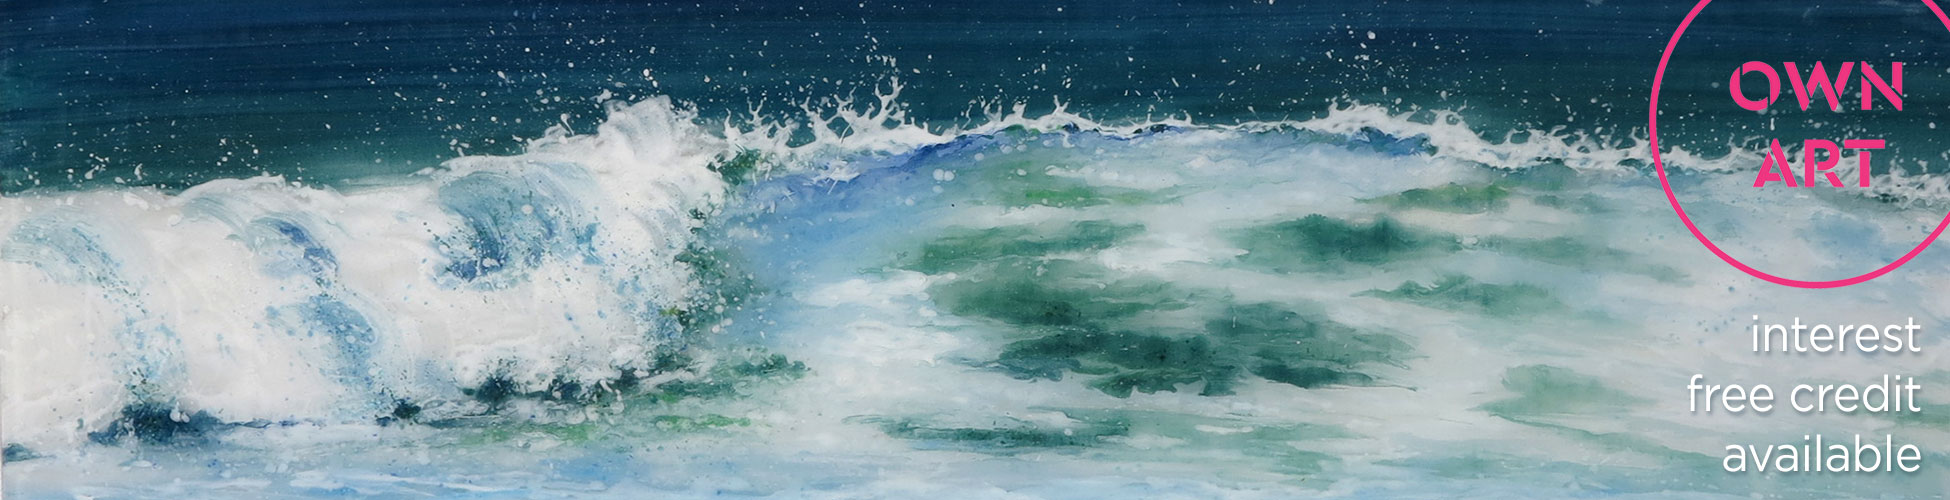 Seascapes by Jane Reeves in Portside Art Gallery Bristol